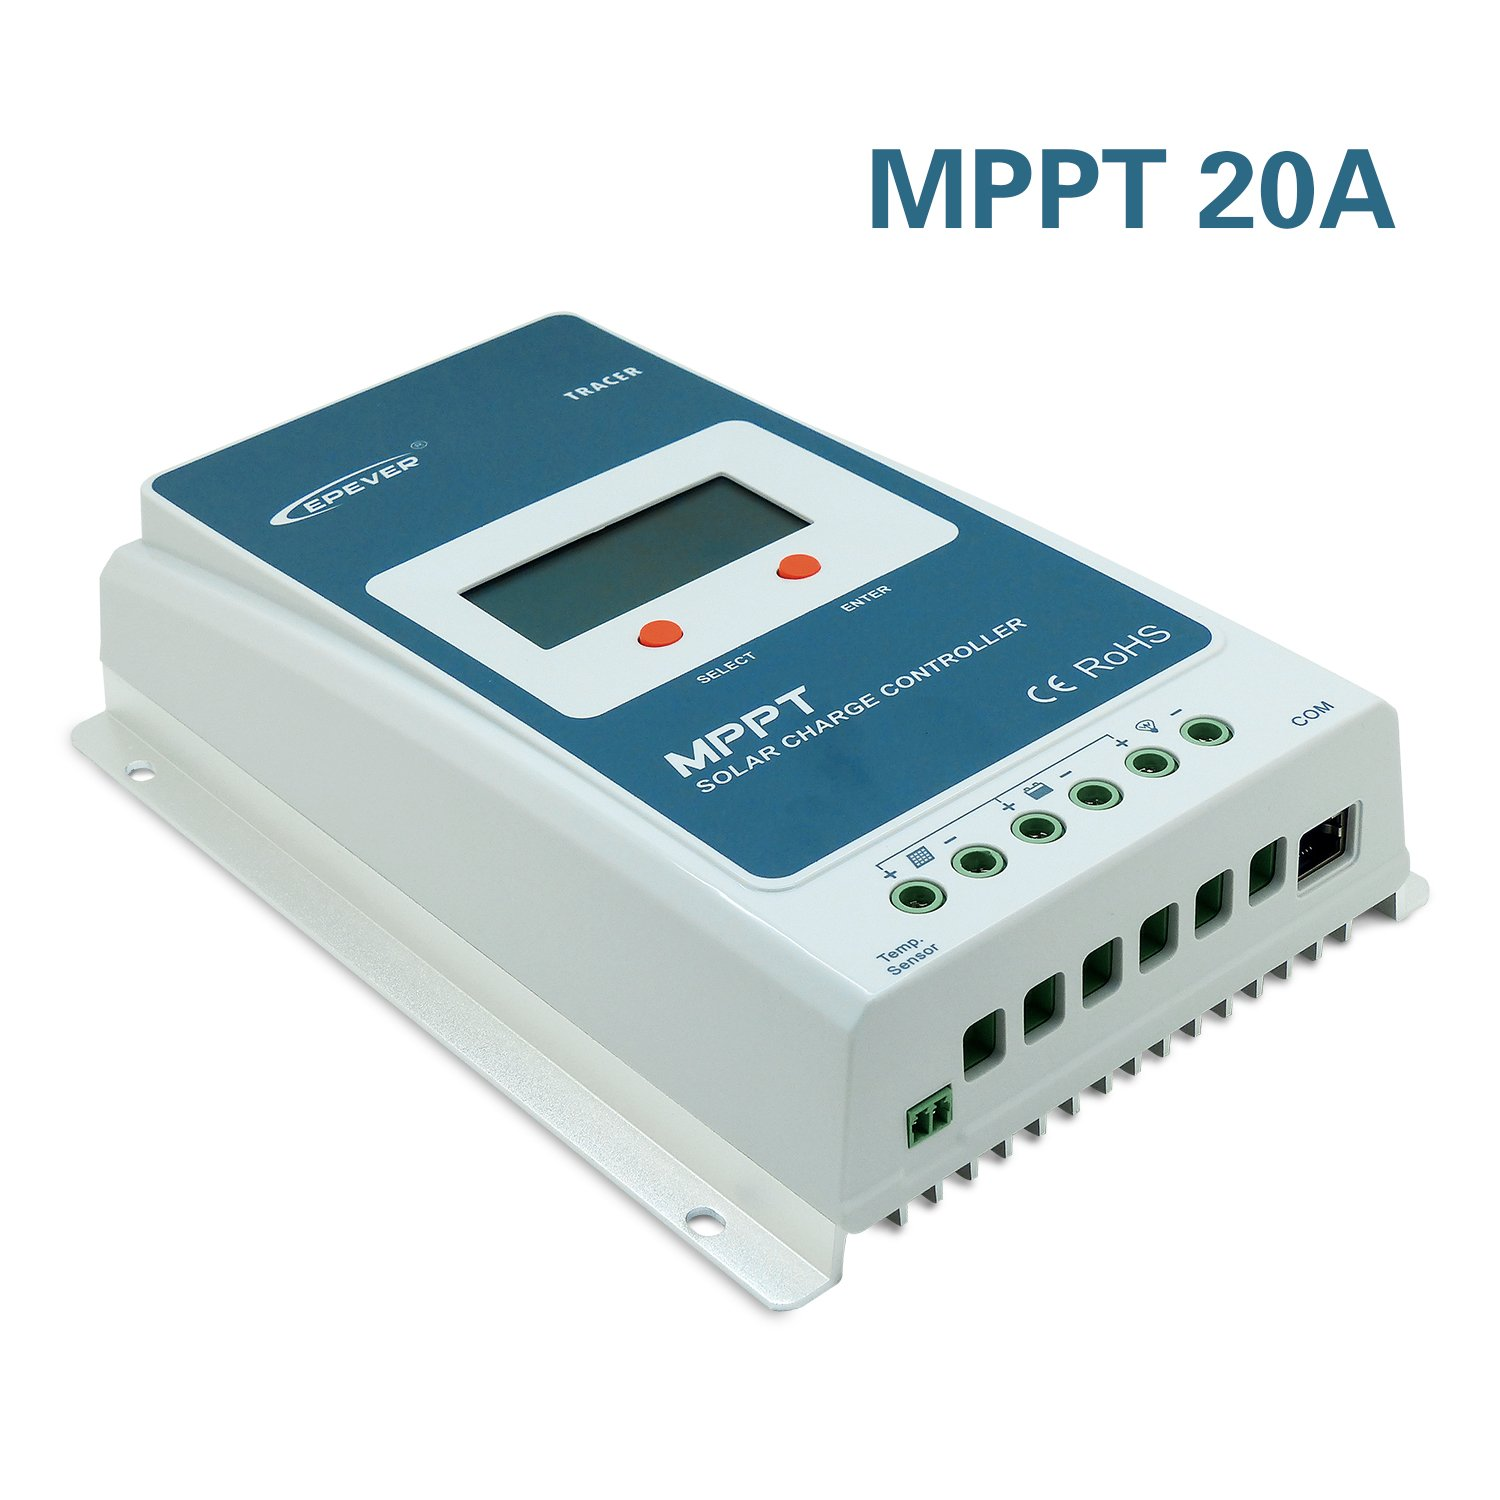 EPEVER MPPT Solar Charge Controller 20A 12V/24V Auto Work Tracer2210A Solar Panel Regulator with LCD Display Max PV 100V Input Power 260W/520W (20A, Tracer2210A) by EPsolar (Image #5)